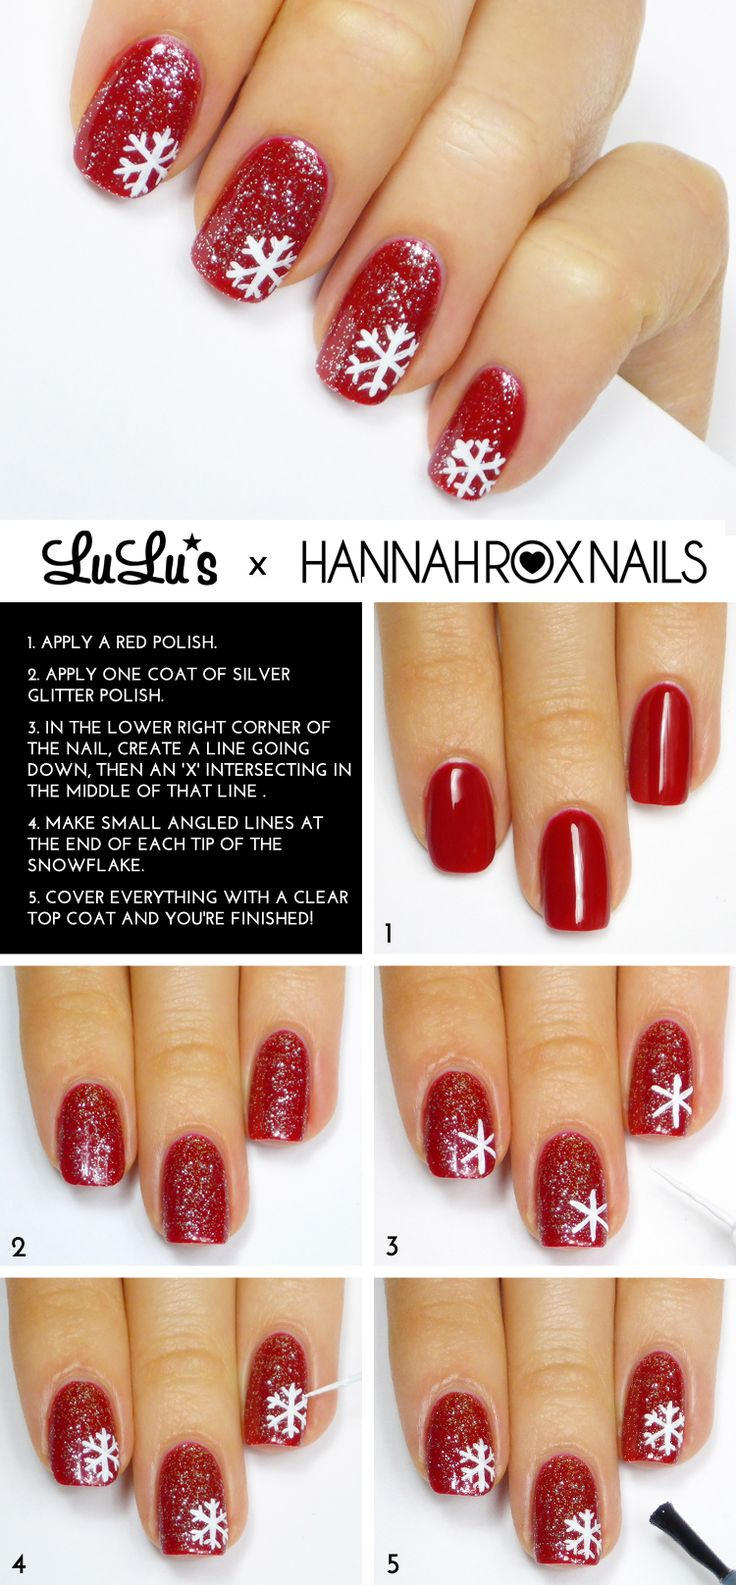 Nail art designs besides red nail art designs on top nail art images - Mani Monday Red Glitter Snowflake Nail Tutorial Snow Nailswinter Nailswinter Nail Artwinter